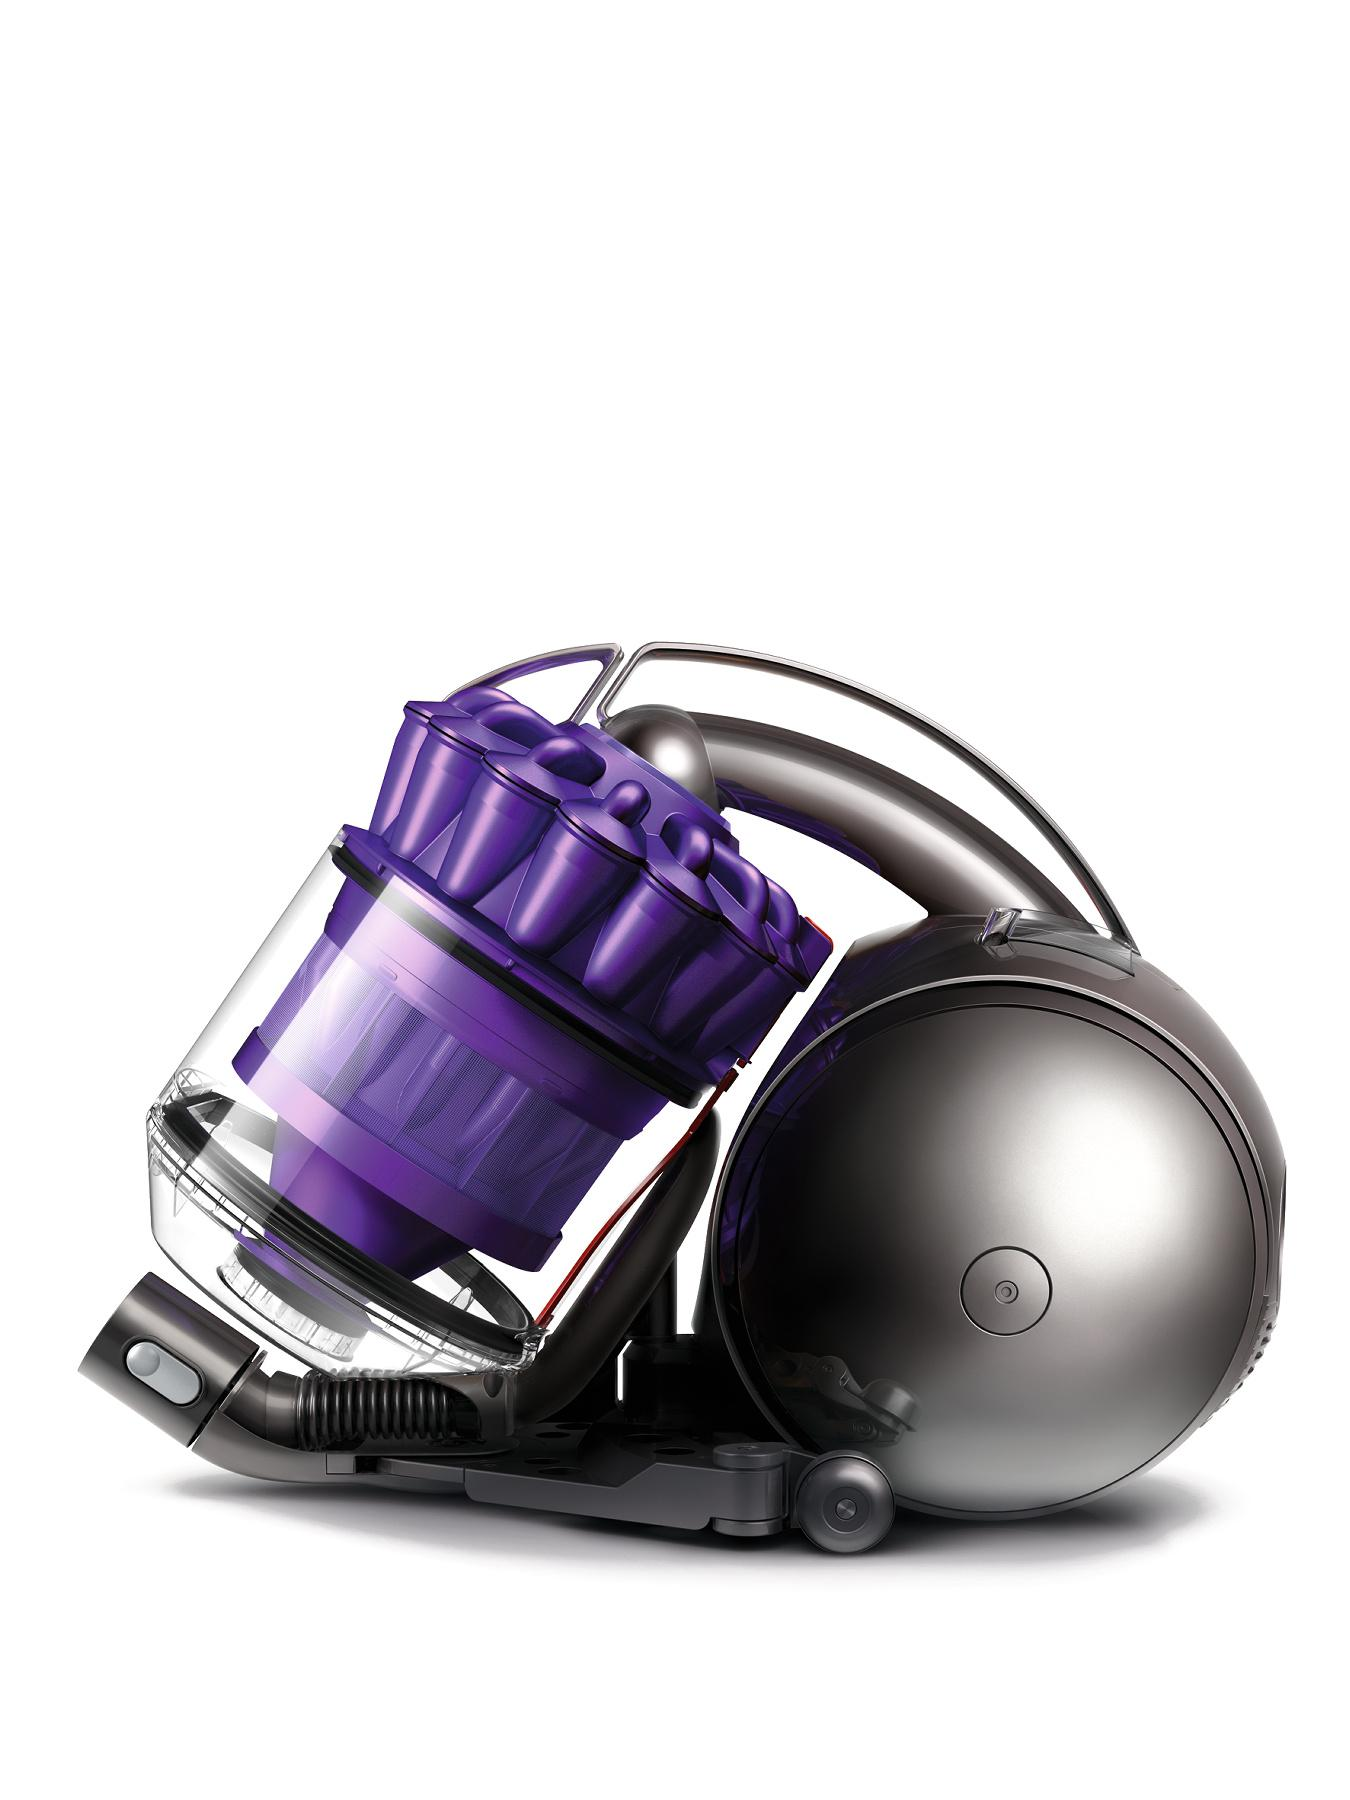 Cheap Dyson Vacuum Cleaners Handhelds And Parts Compare